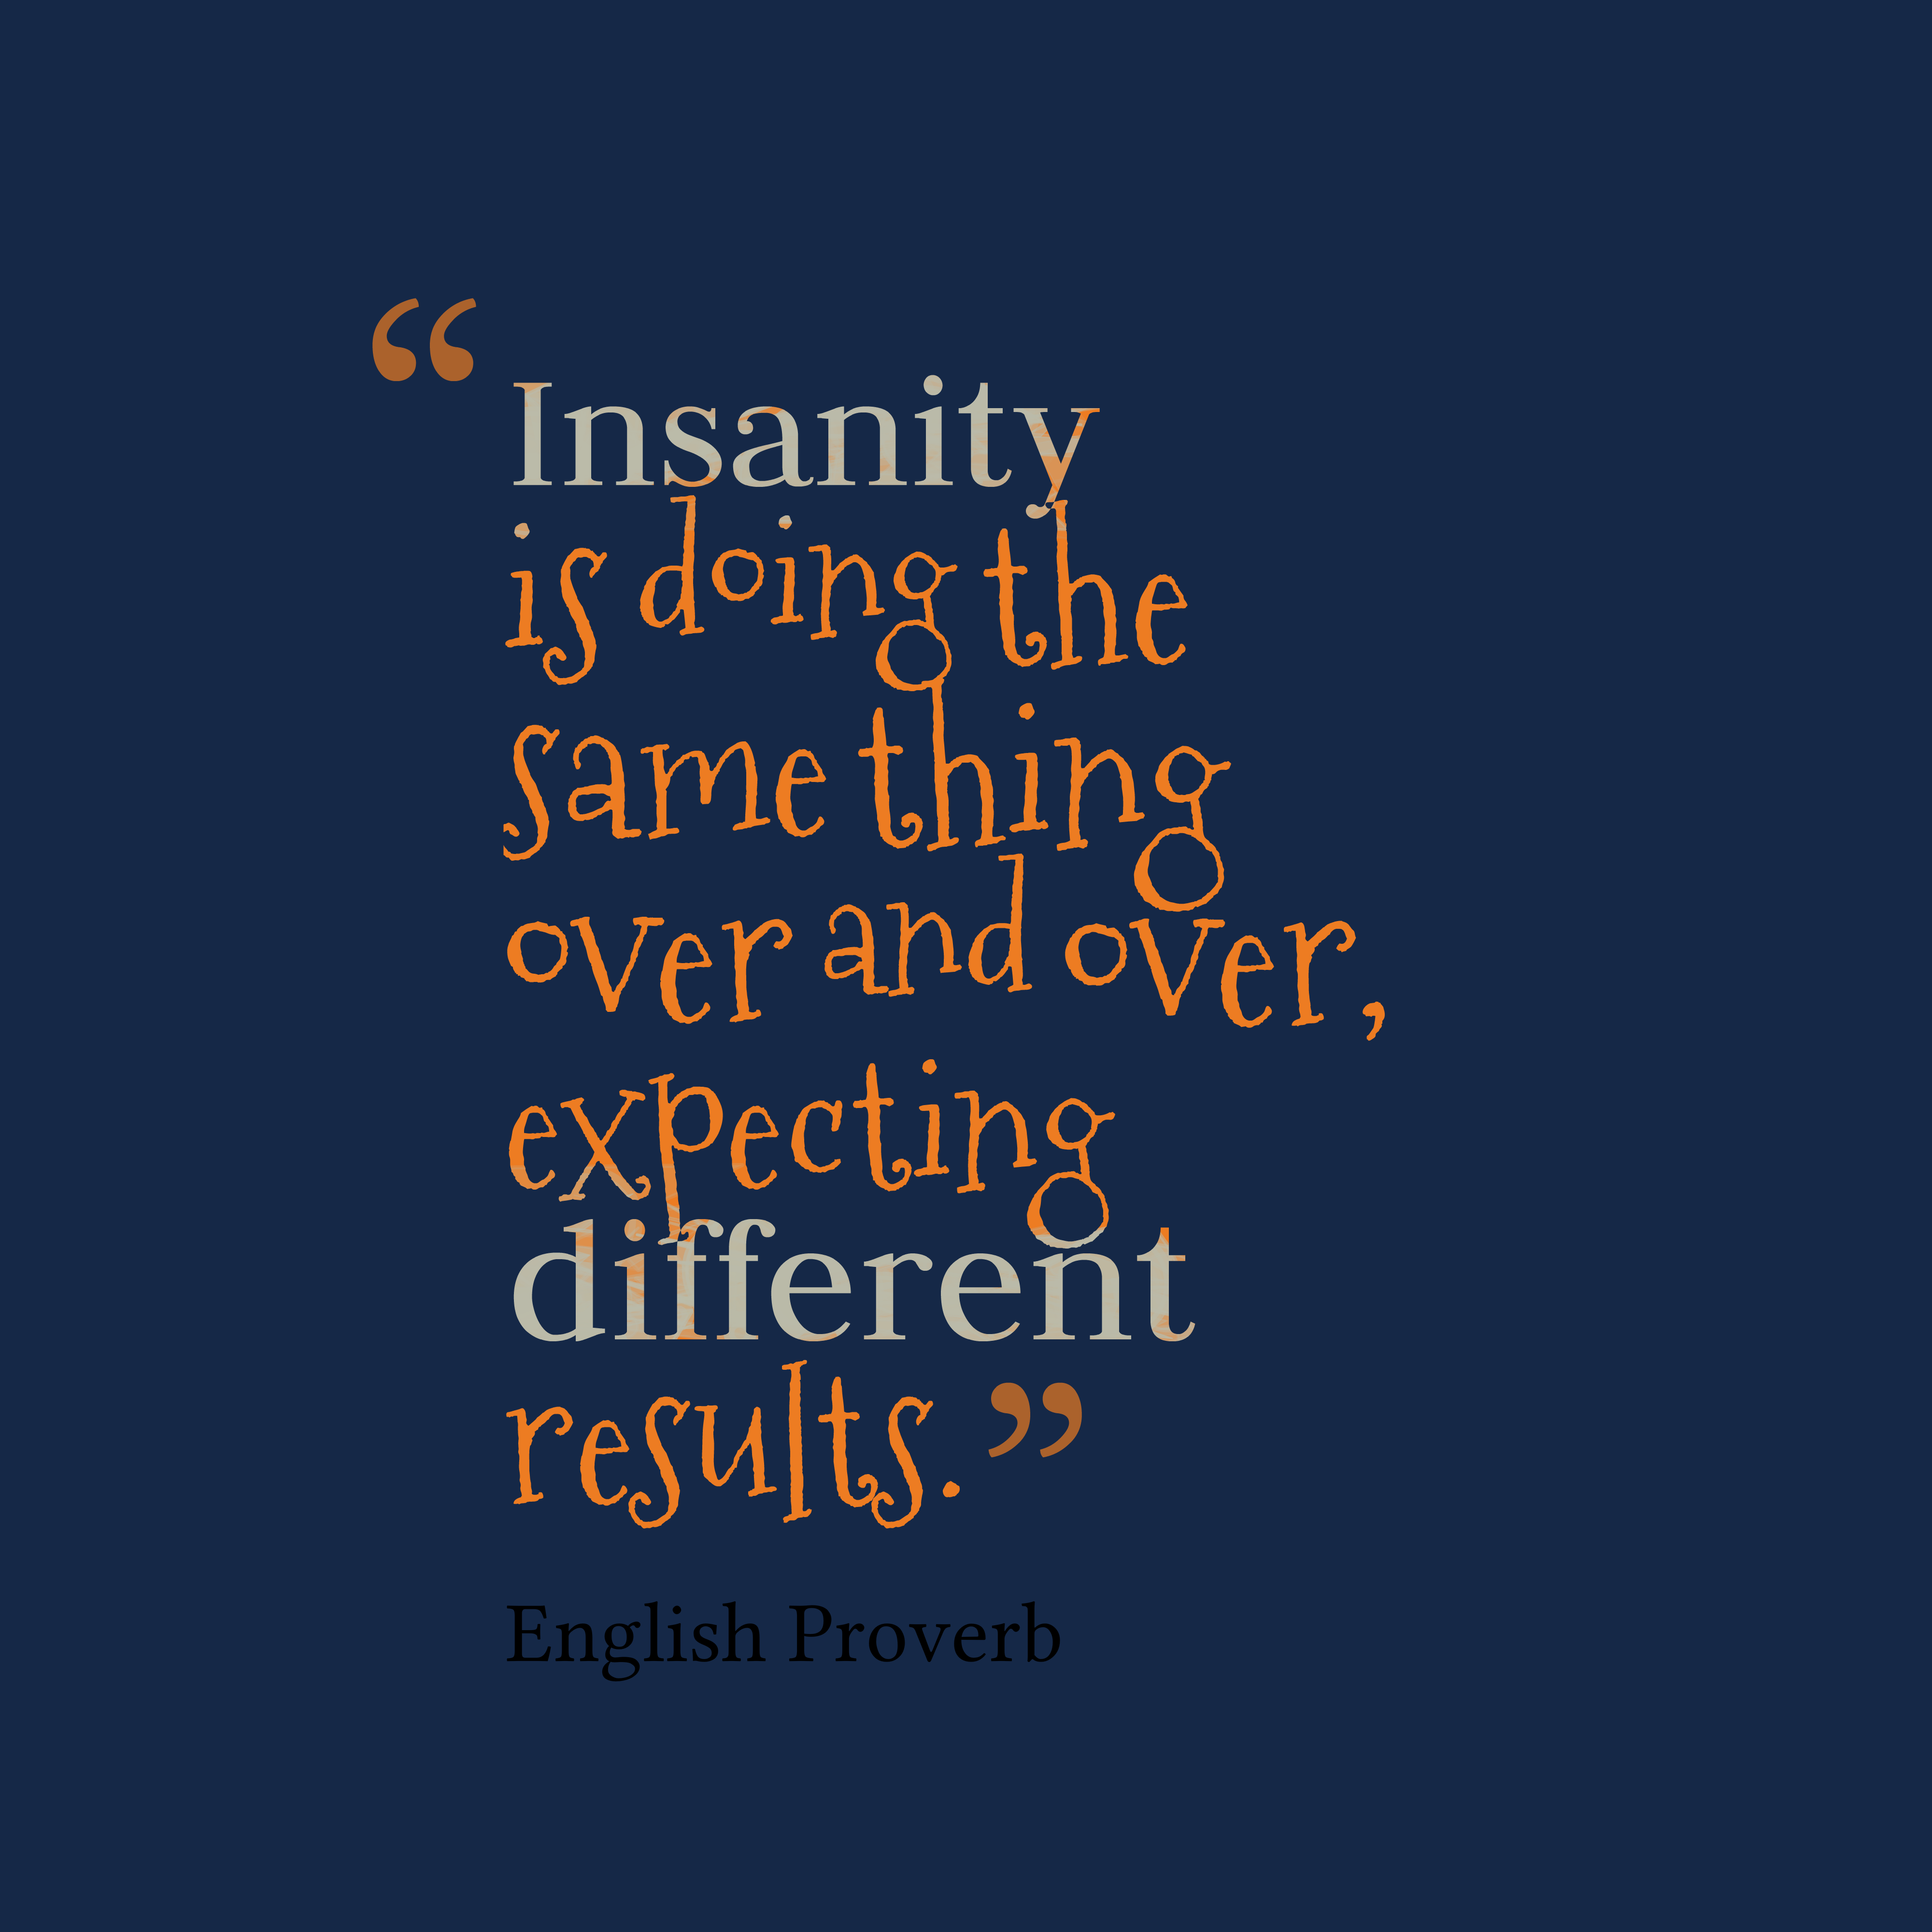 Quotes English: Picture » English Proverb About Insanity